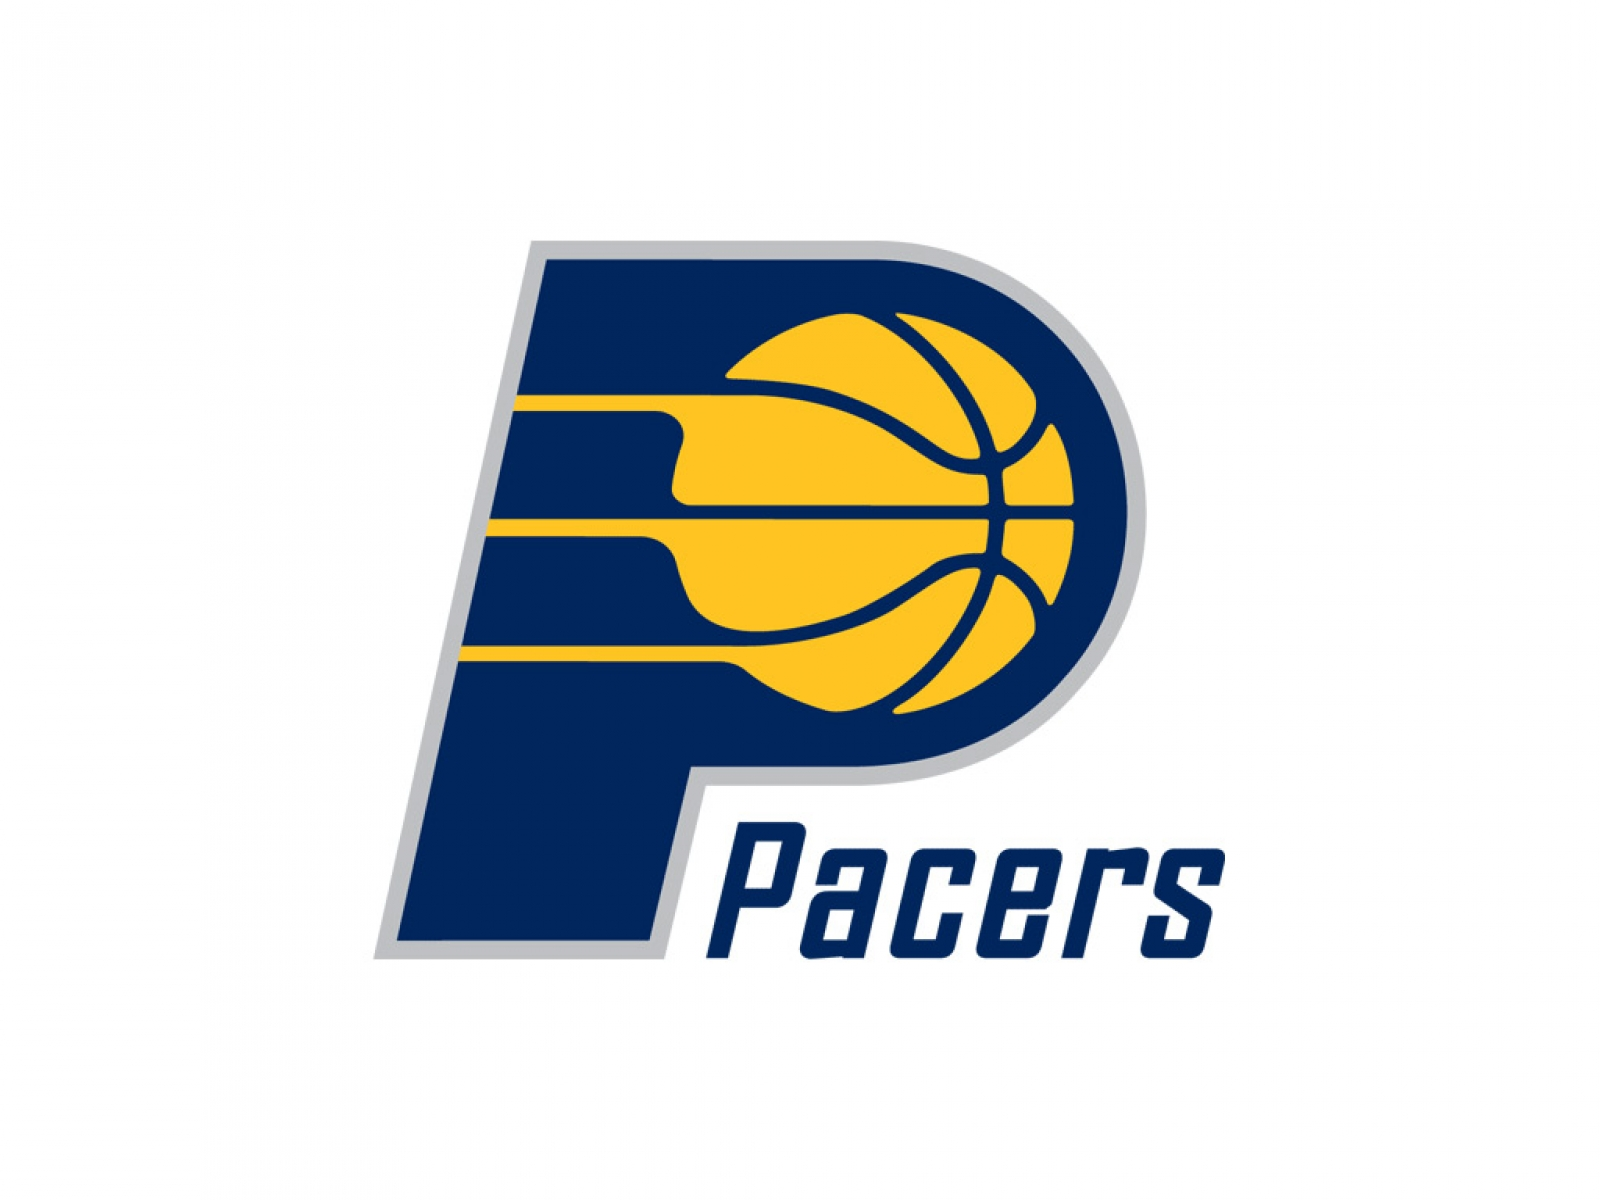 INDIANA PACERS nba basketball 2 wallpaper background 1600x1200